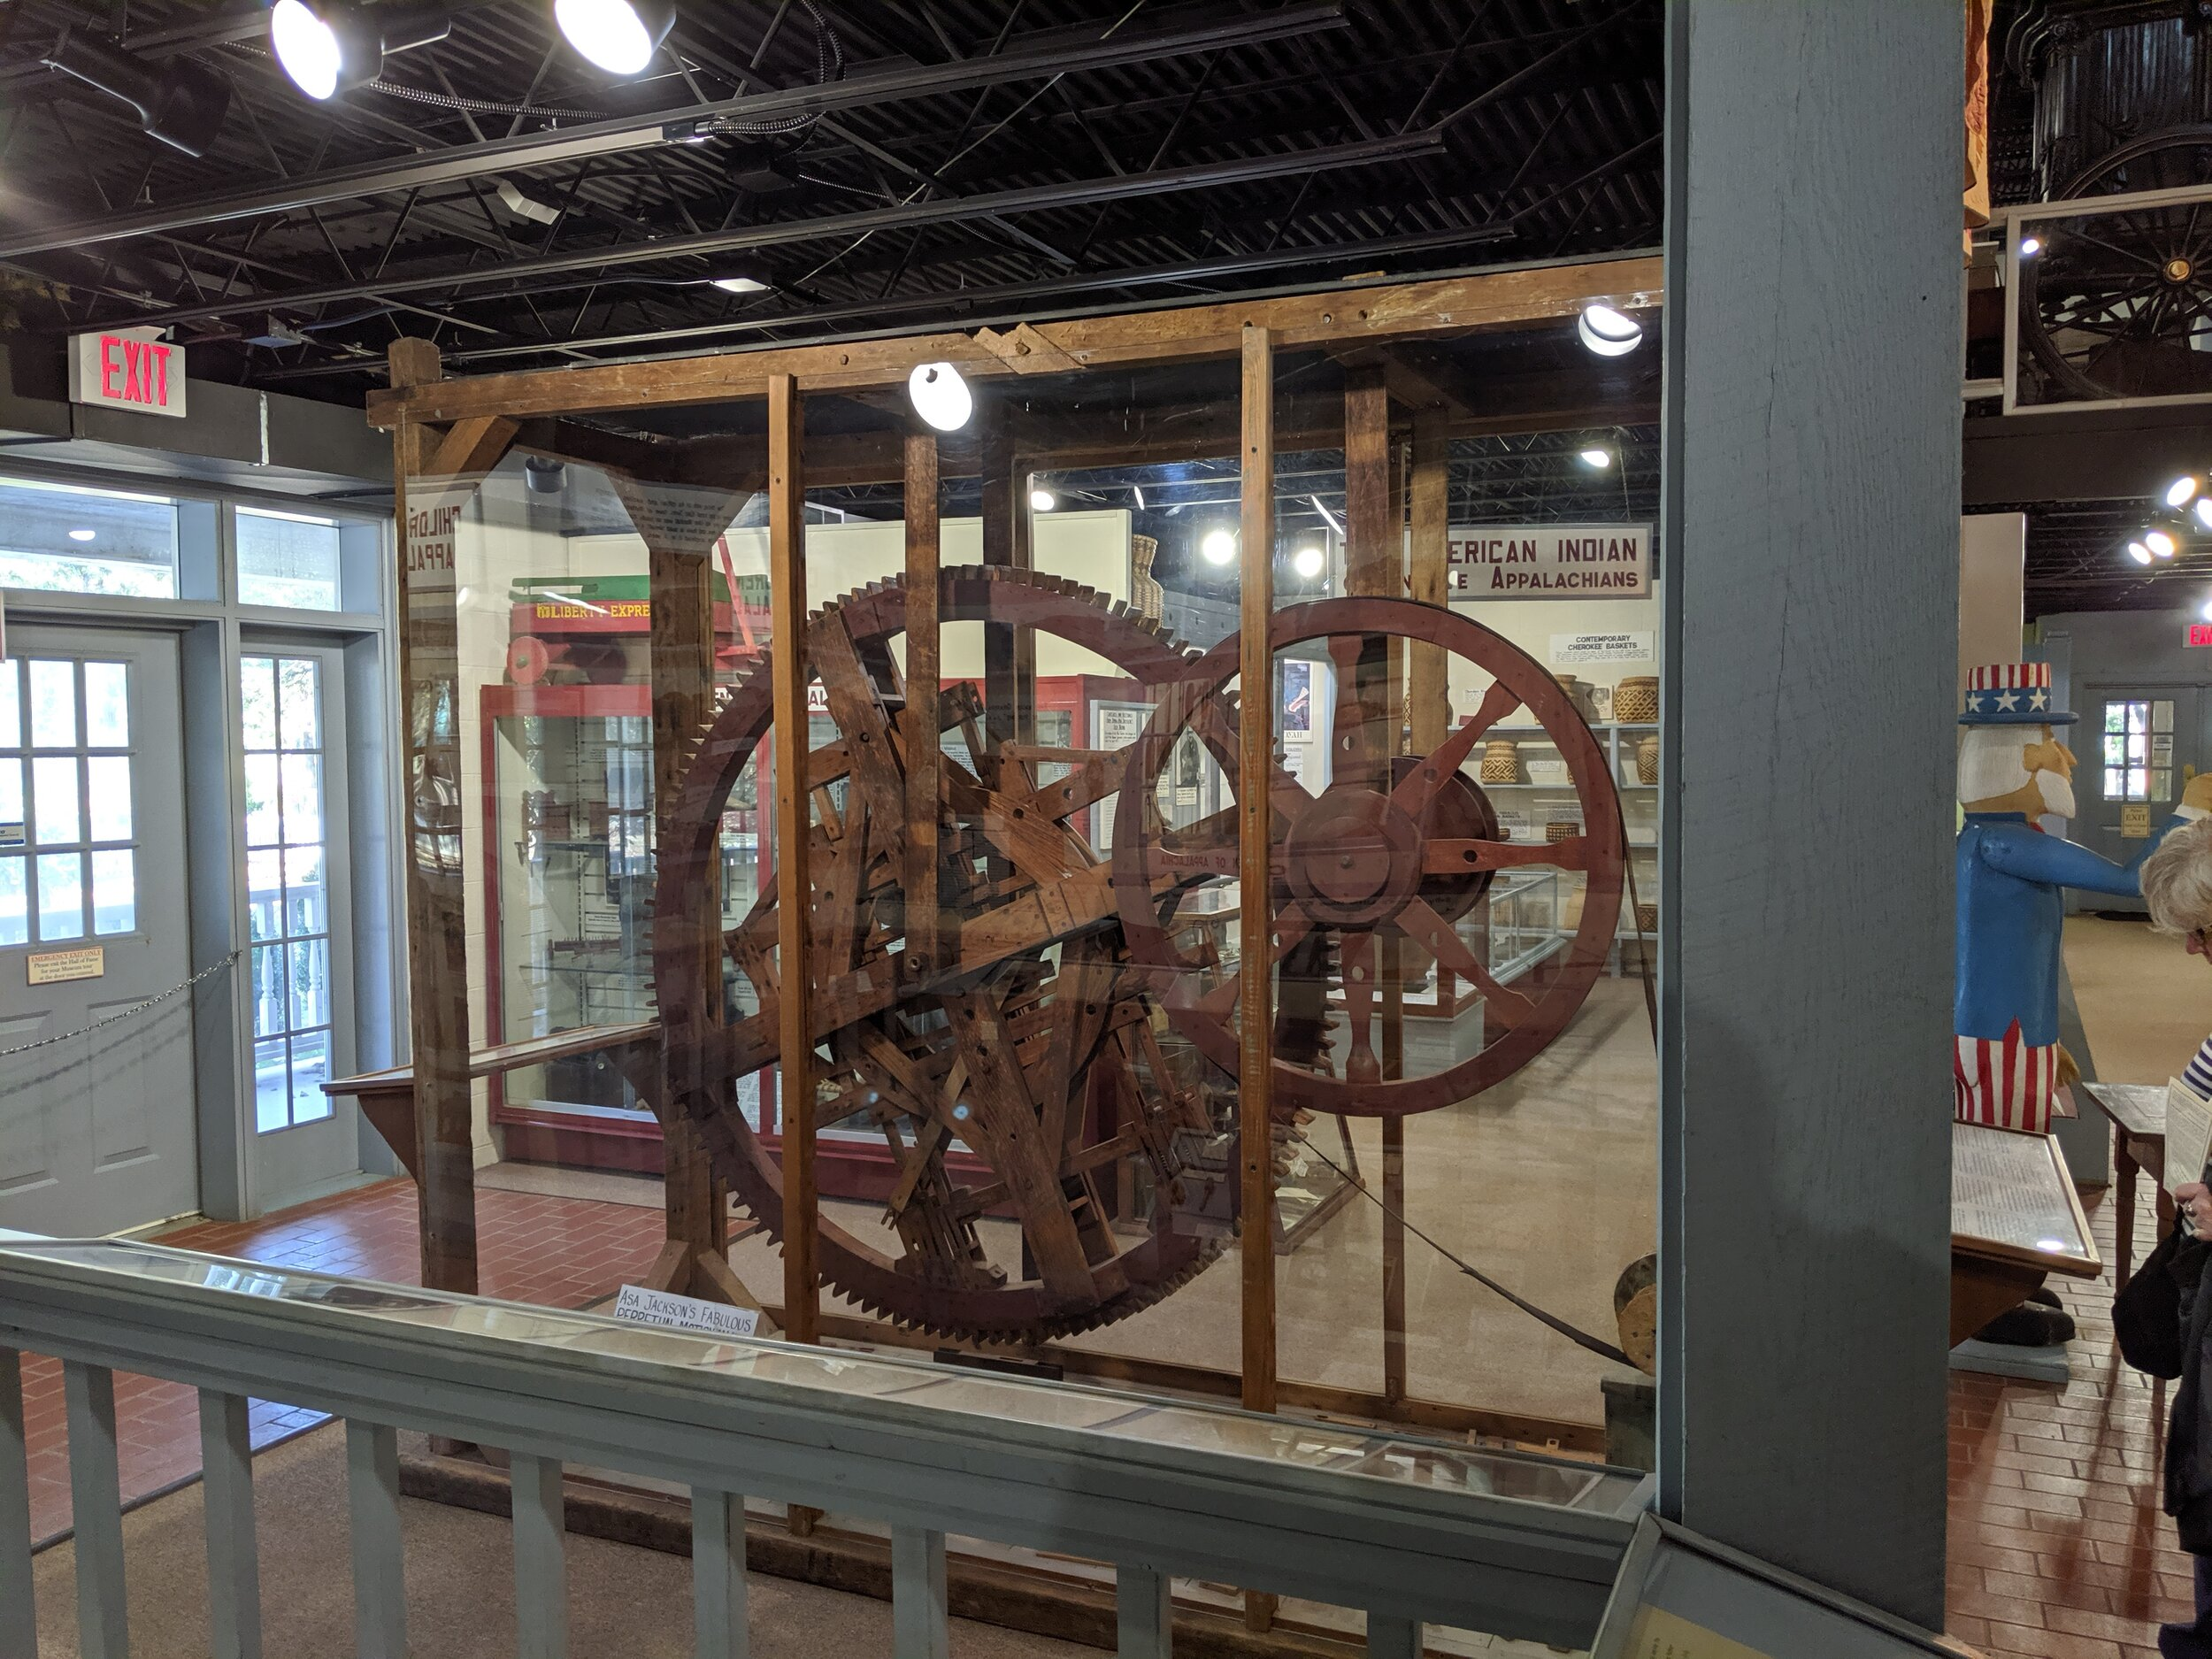 This is a perpetual motion machine, built in the 1800's. The inventor insisted on removing a few parts so others couldn't steal his idea. Unfortunately, he left it that way, and no one can figure out how to fix it.